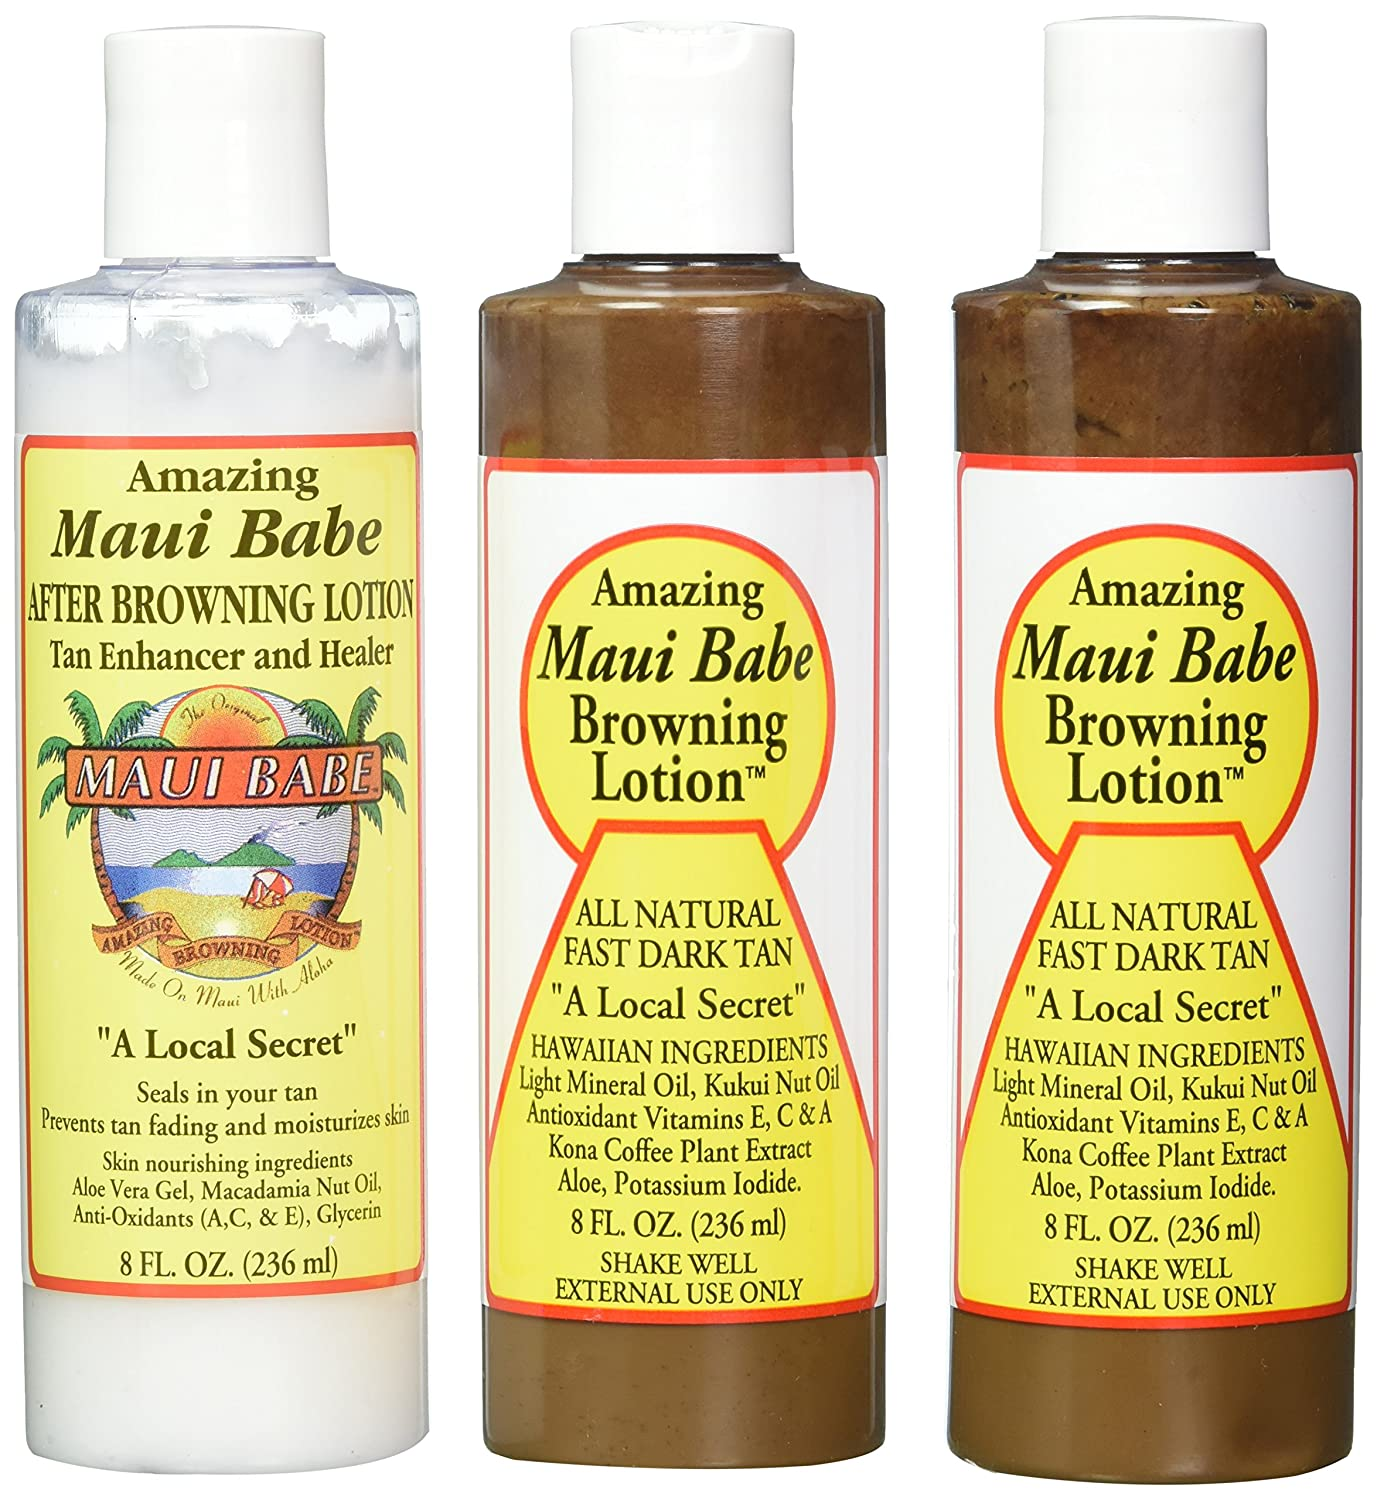 Maui Babe Tanning Pack (2 Browning Lotions 8 oz, 1 After Browning Lotion 8 oz) B000OF8C7E